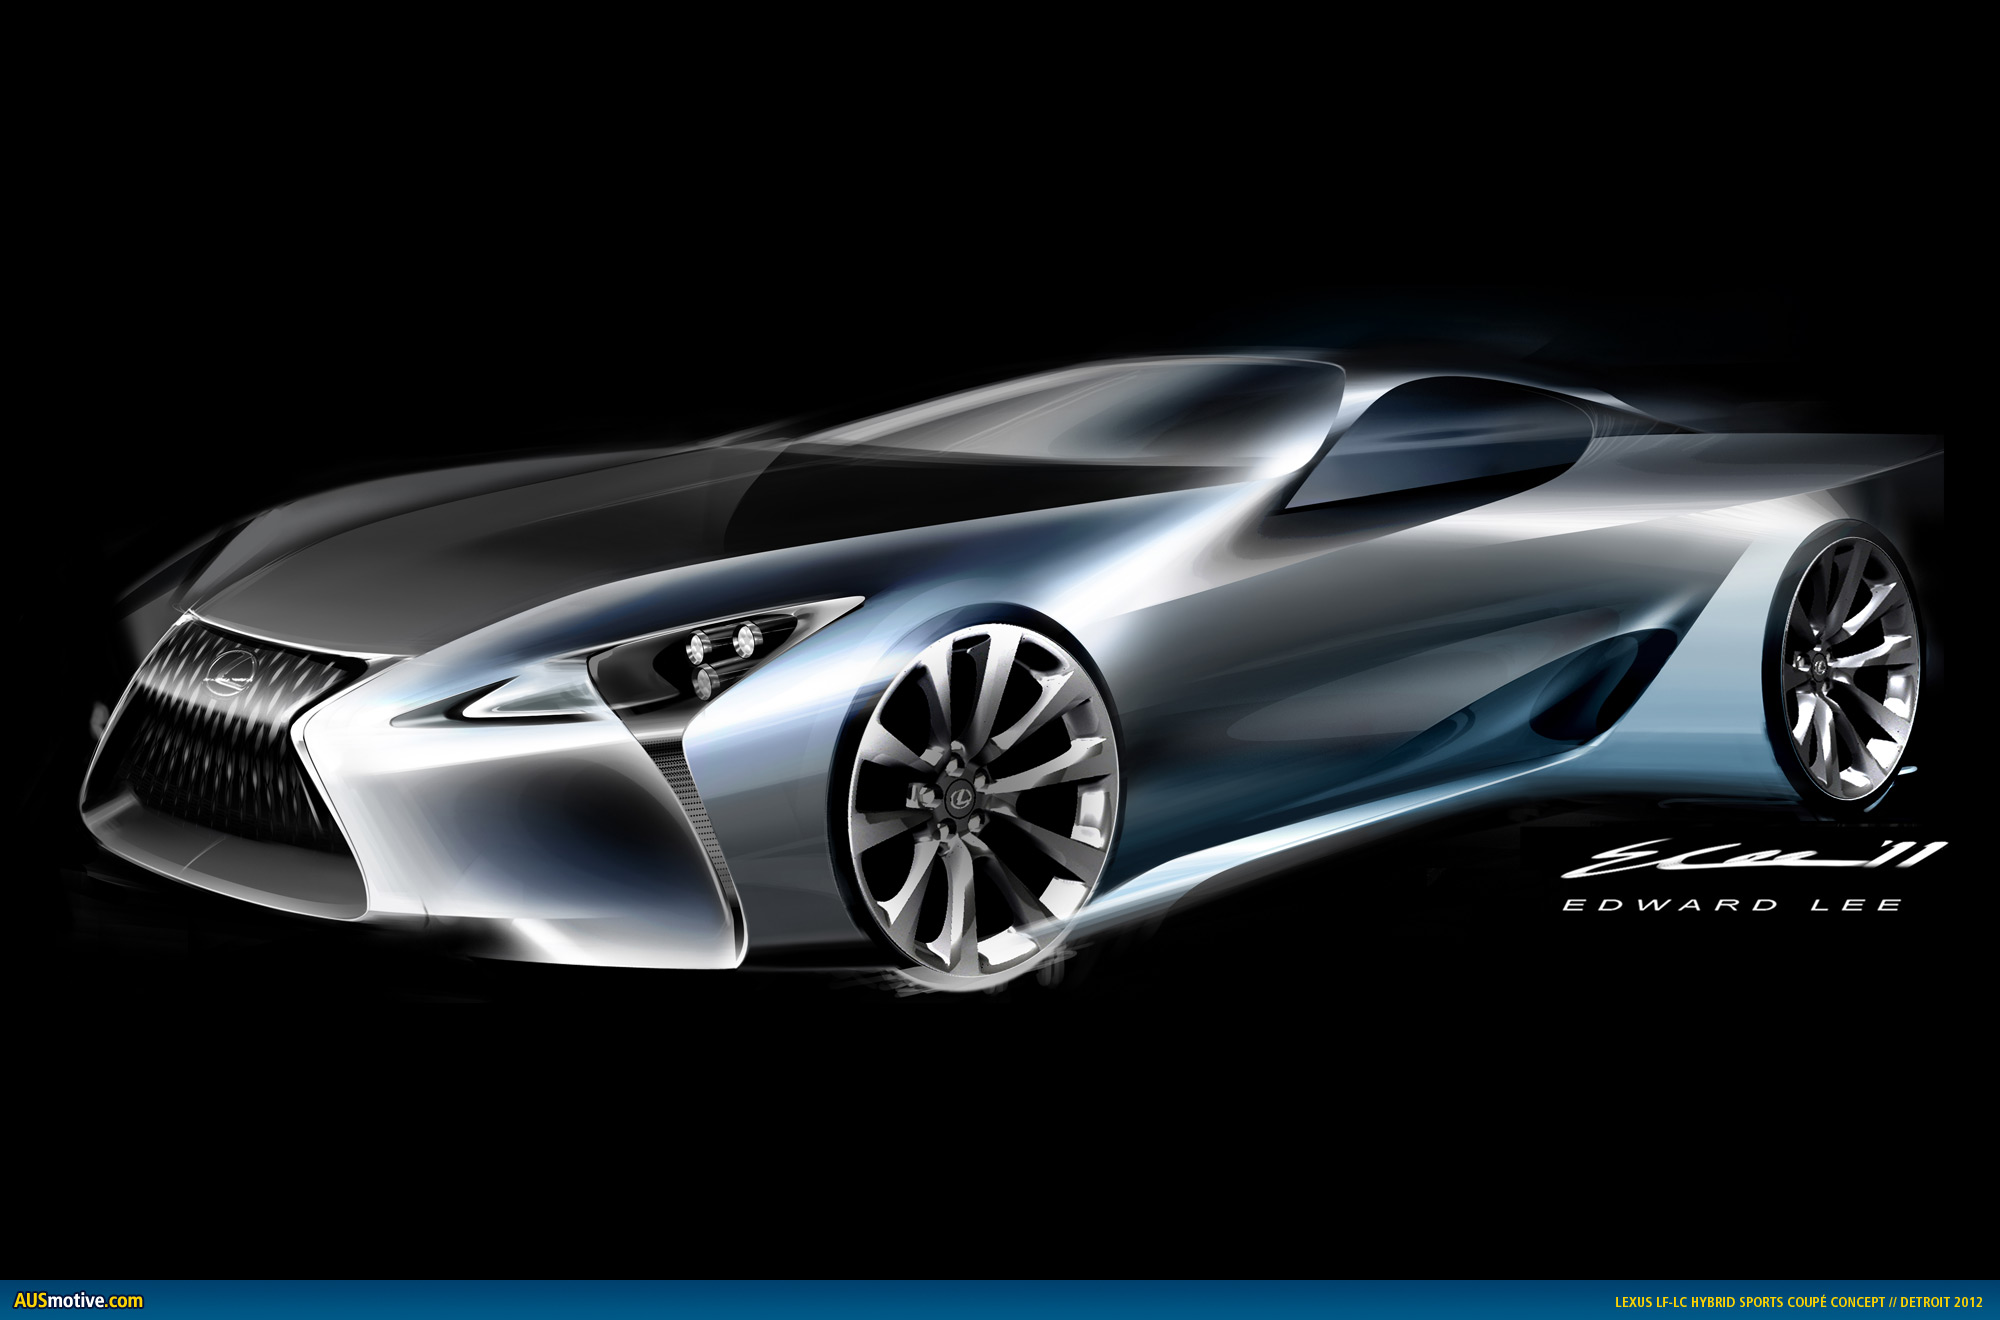 detroit 2012 lexus lf lc concept. Black Bedroom Furniture Sets. Home Design Ideas